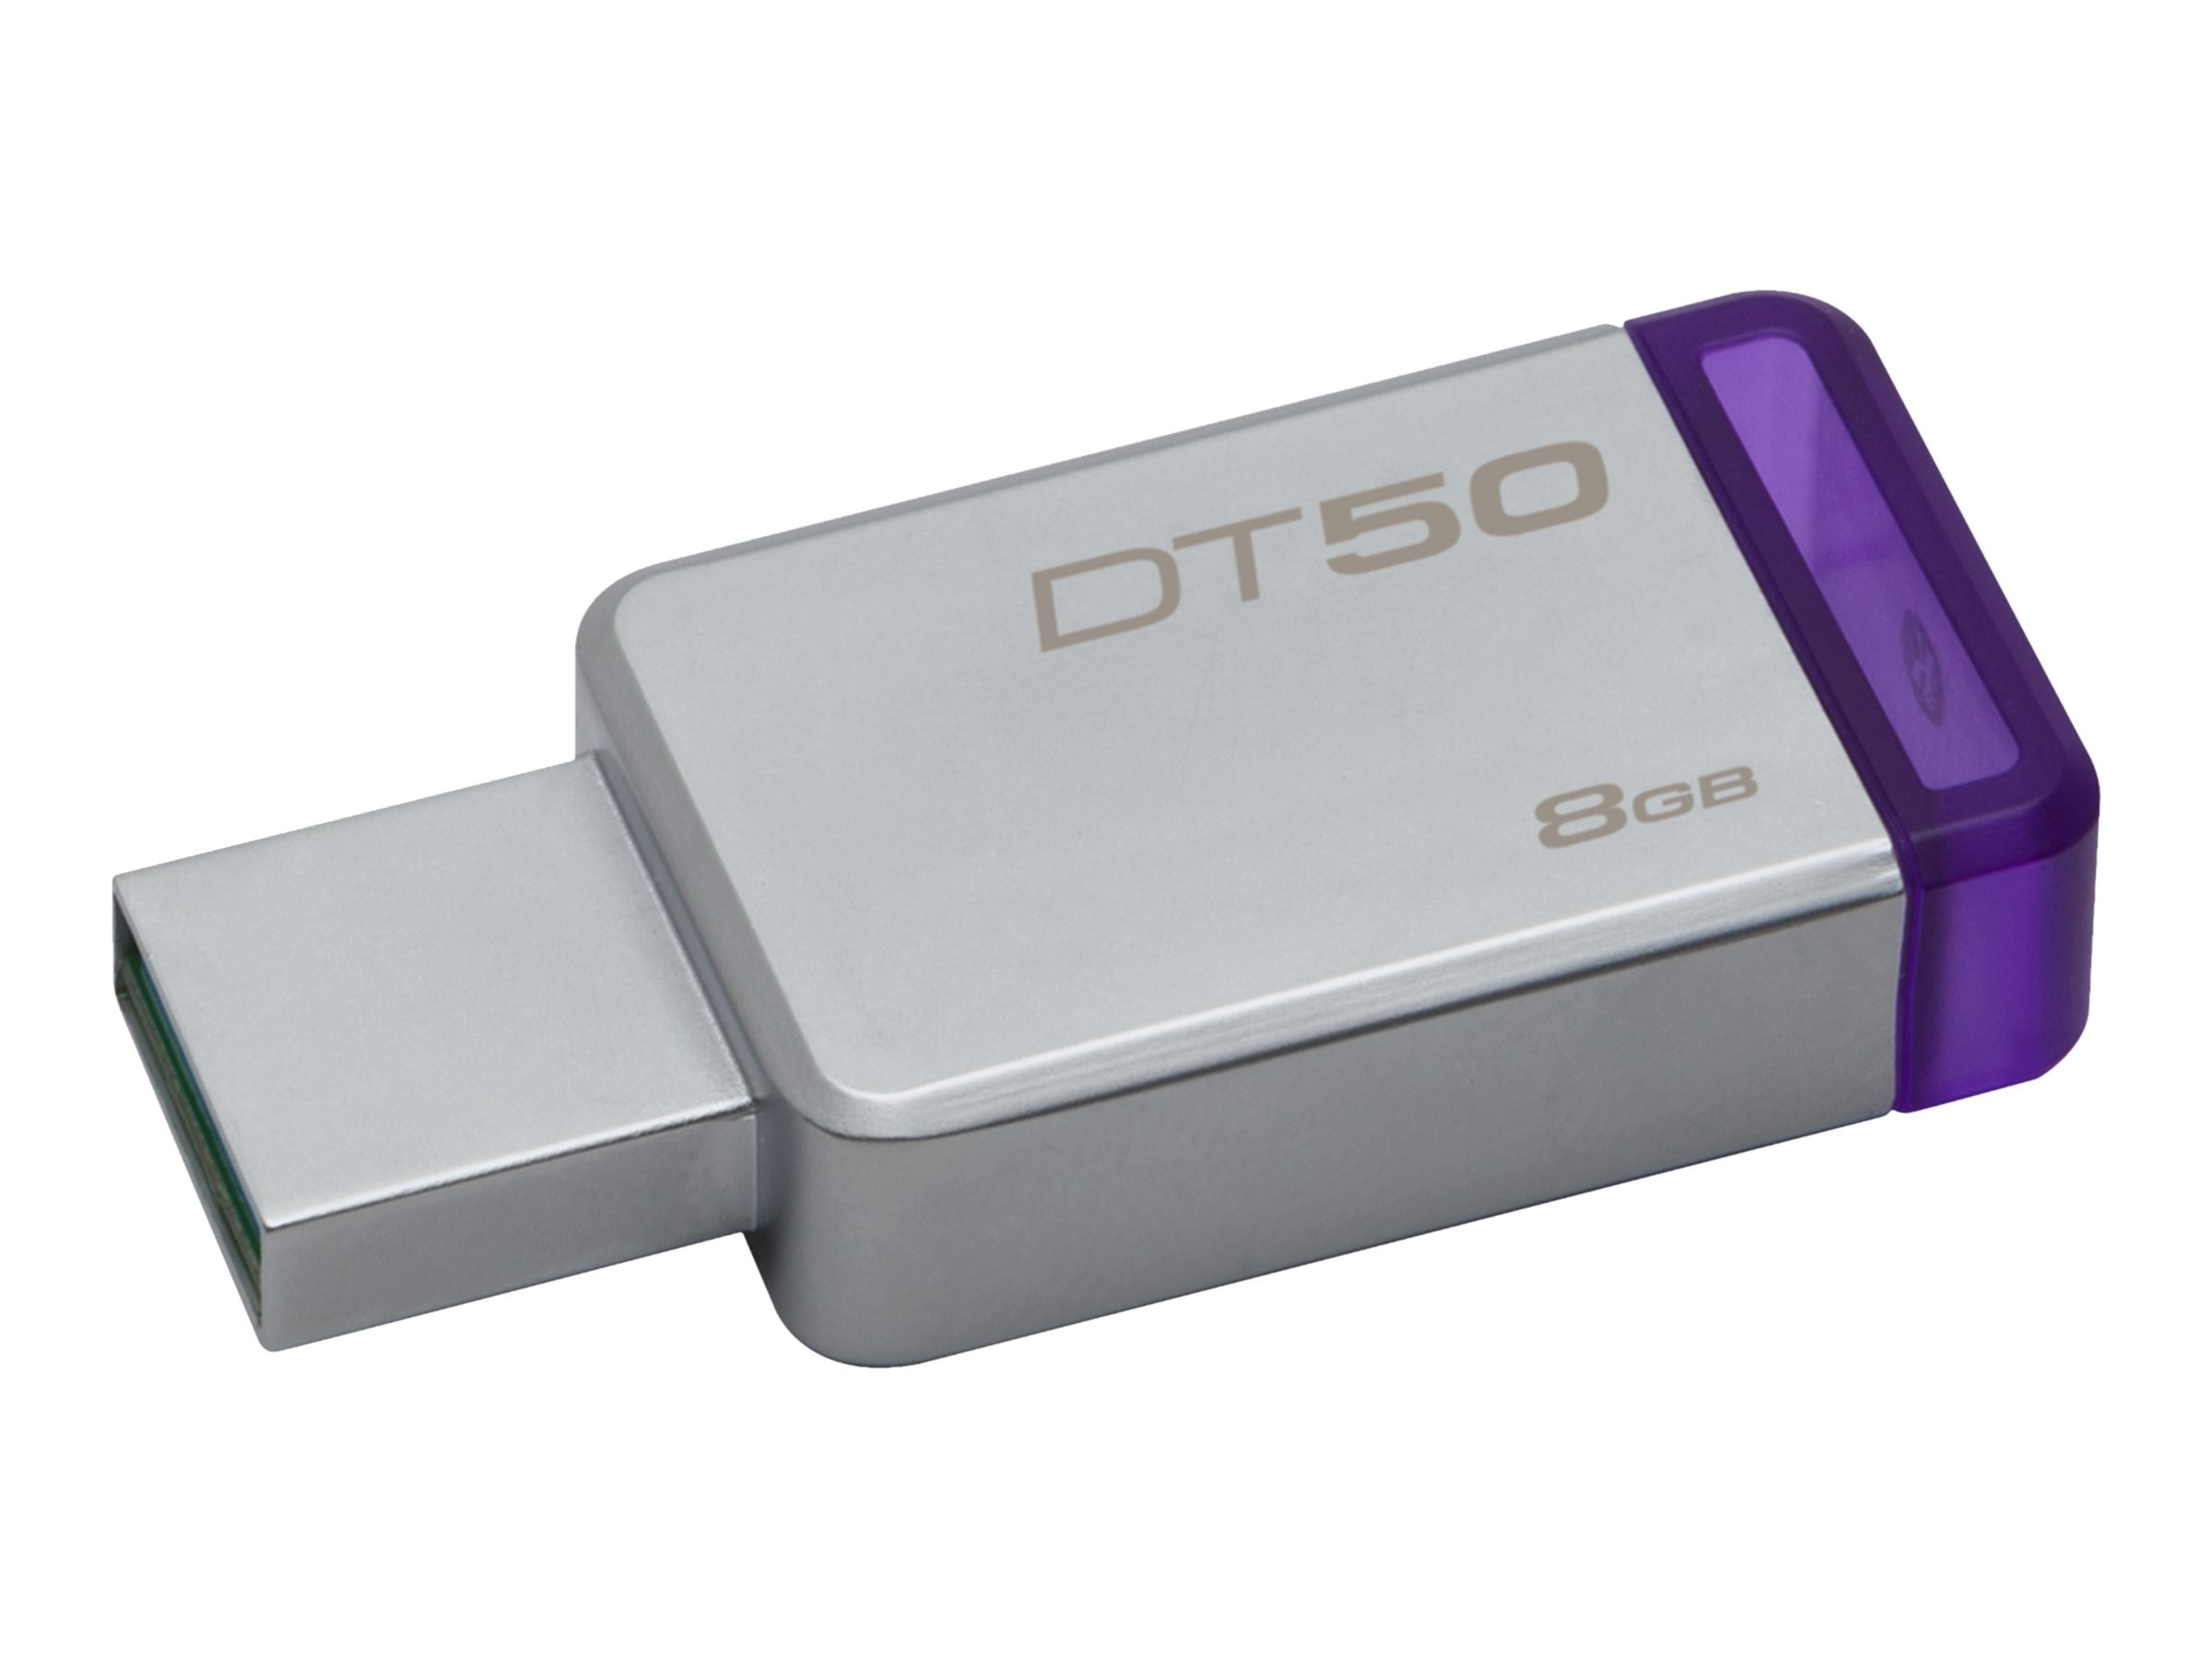 Kingston DT50/8GB Image 1